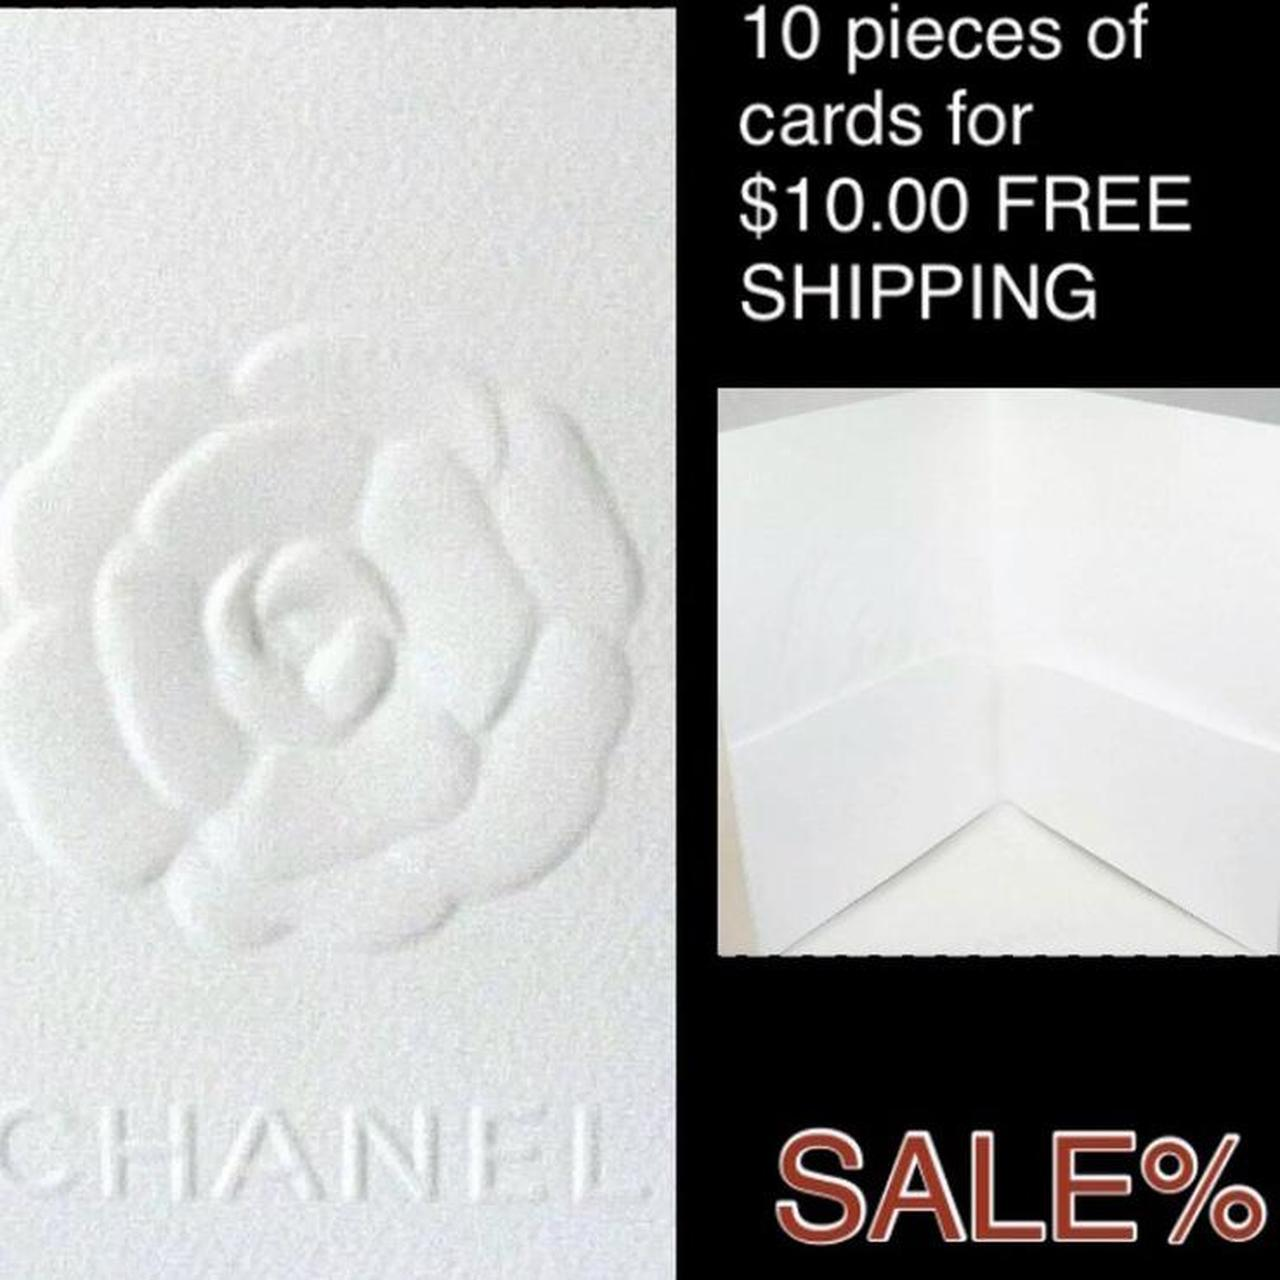 Product Image 1 - New Never used 10 pieces